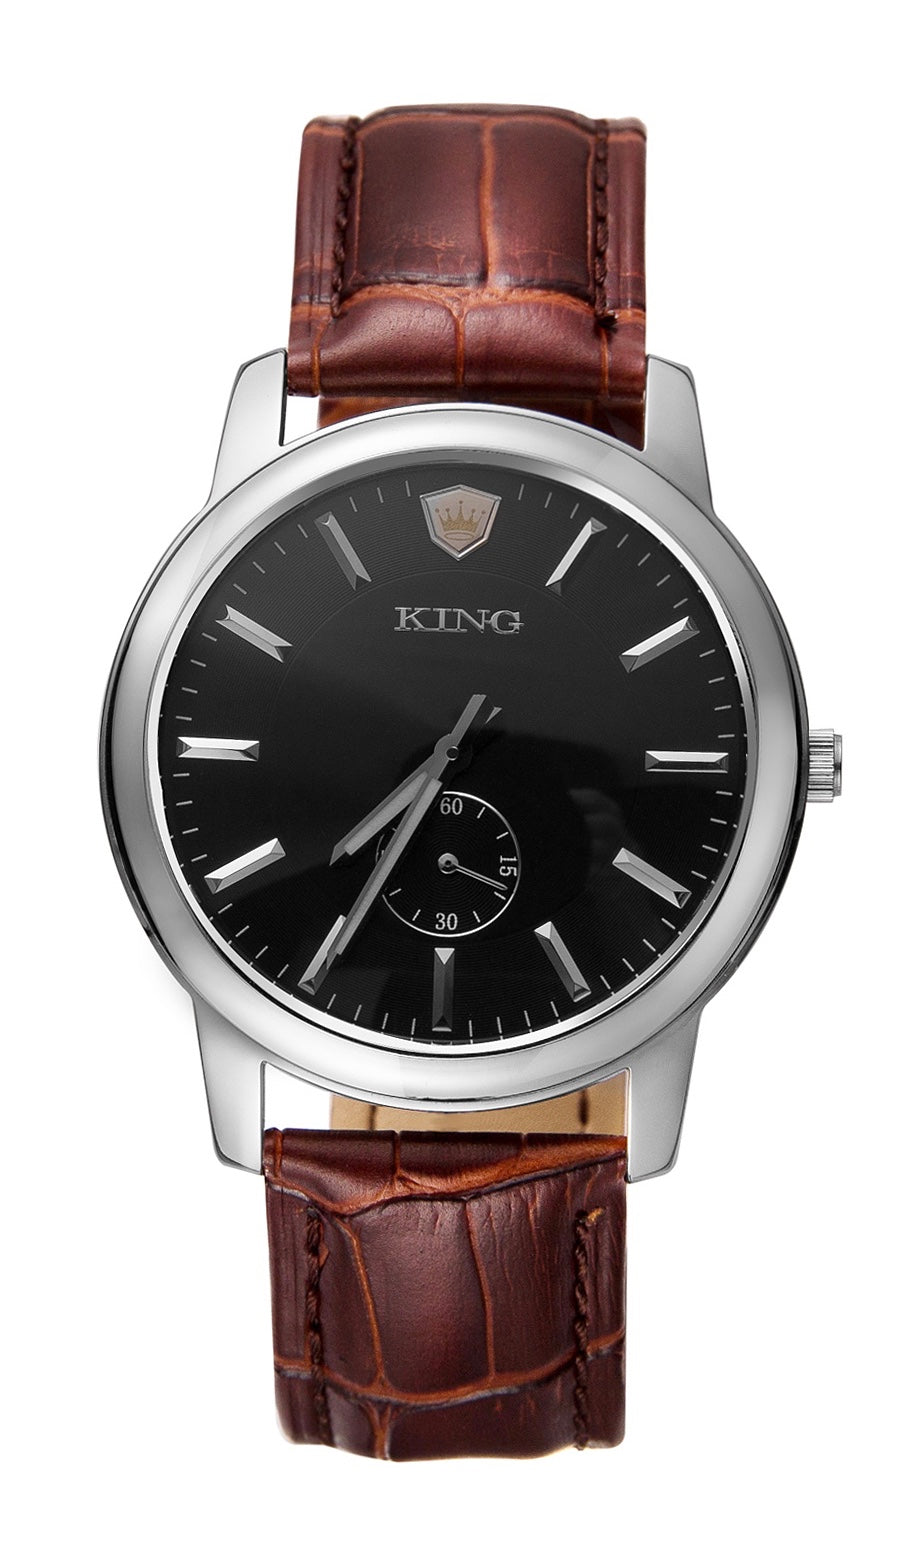 KING Evolution Series Black | Brown Leather